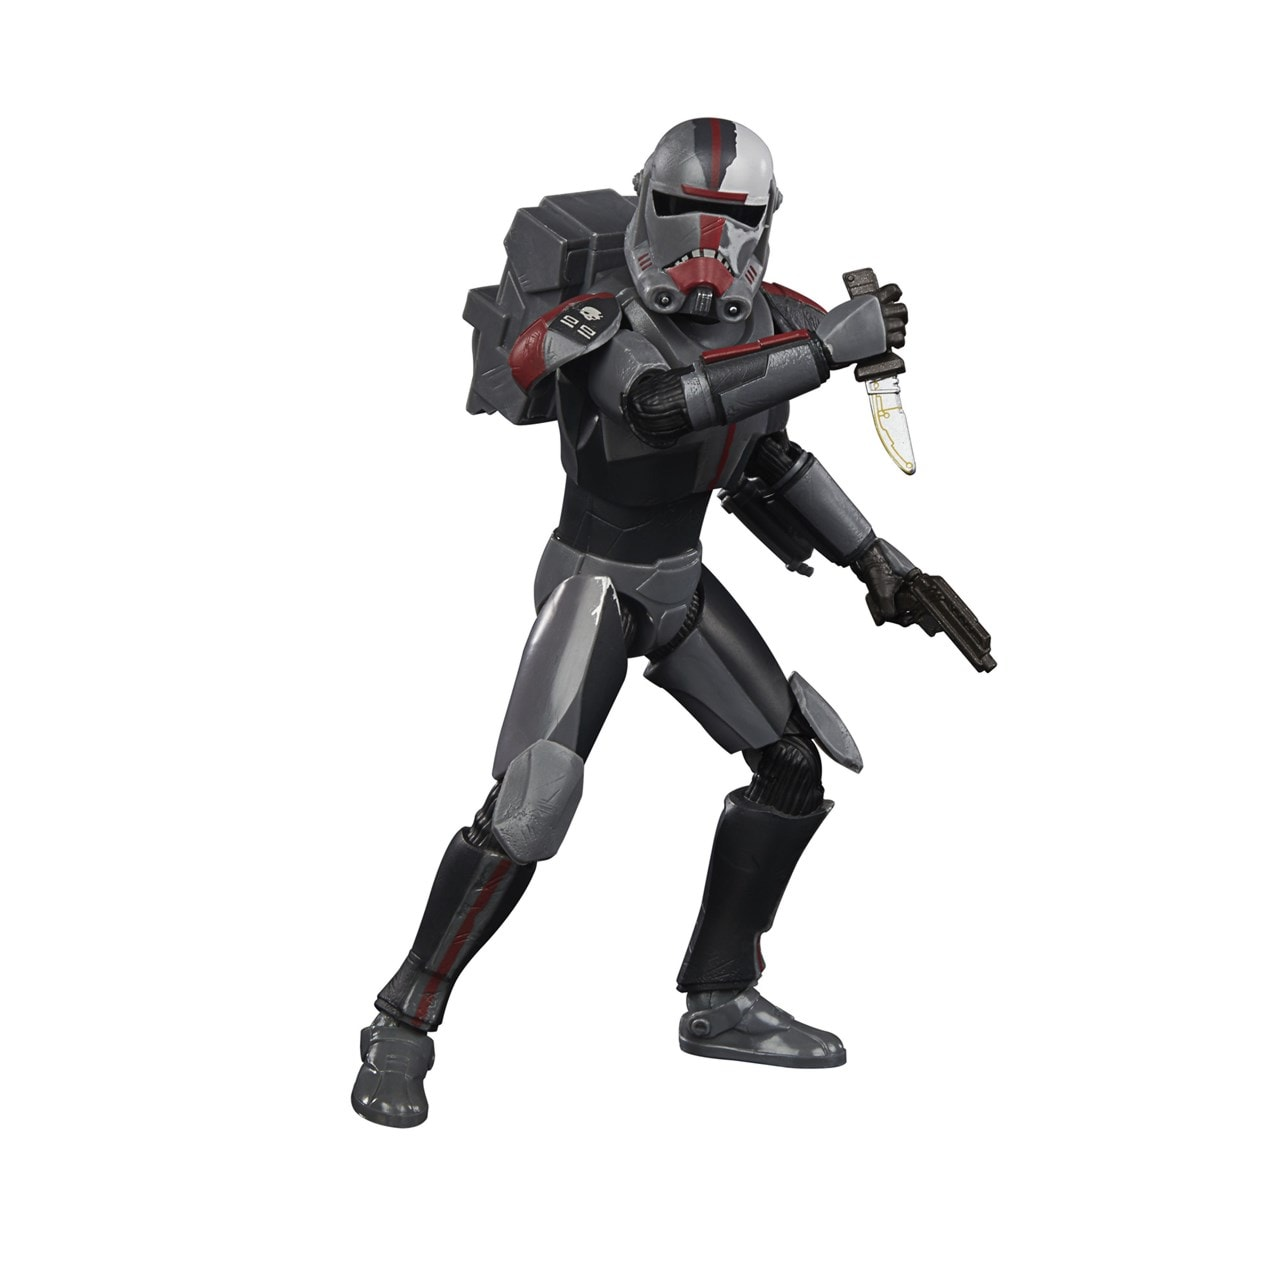 Bad Batch Hunter: Clone Wars: Star Wars Black Series Action Figure - 3